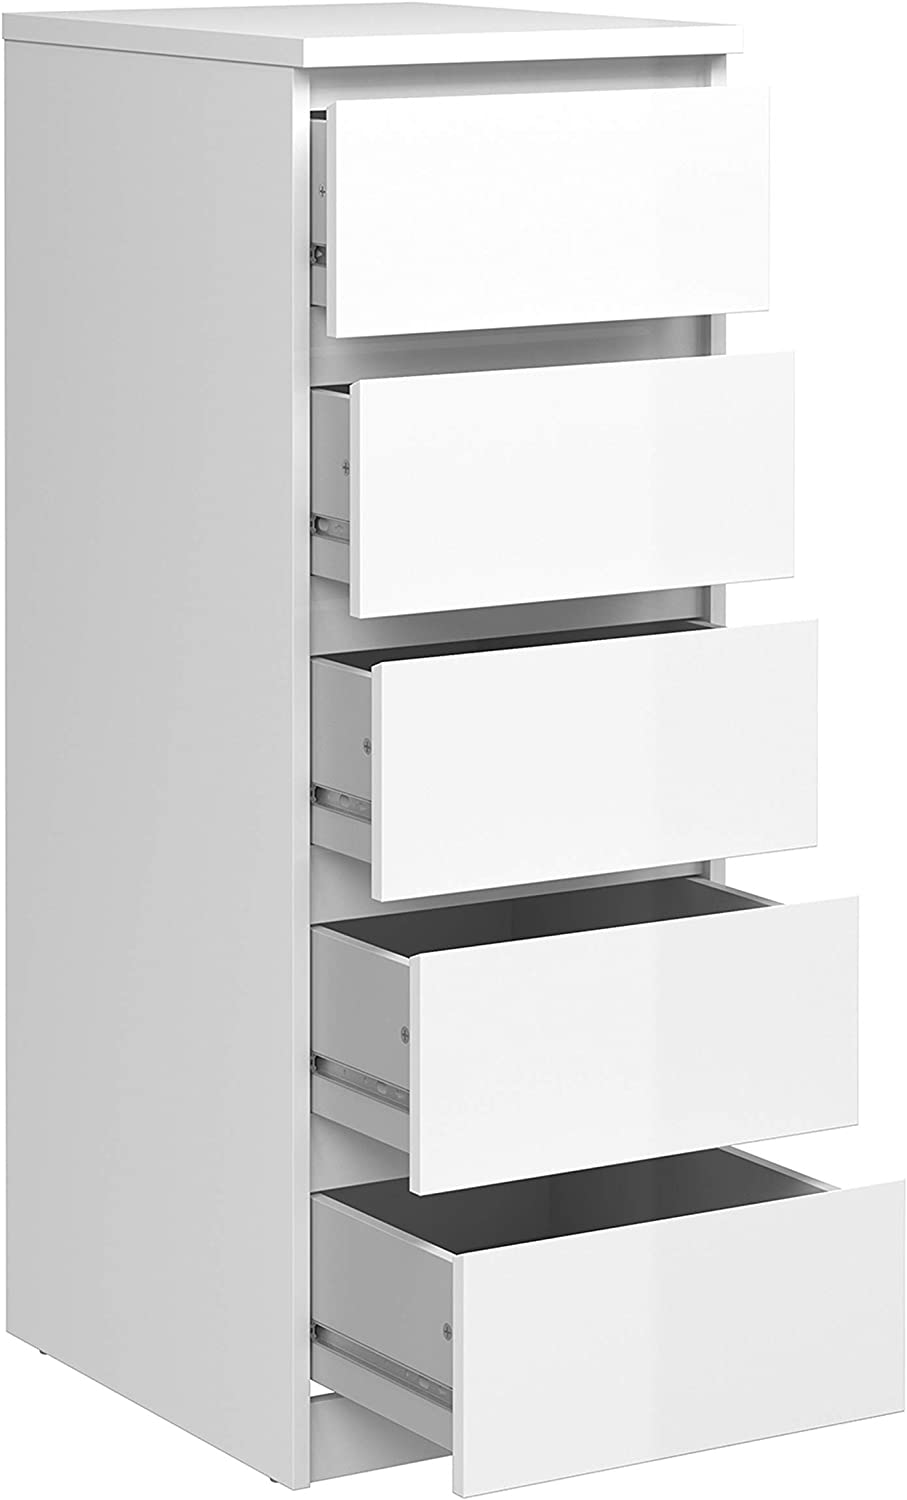 Furniture To Go   Naia Narrow Chest of 5 Drawers in White High Gloss